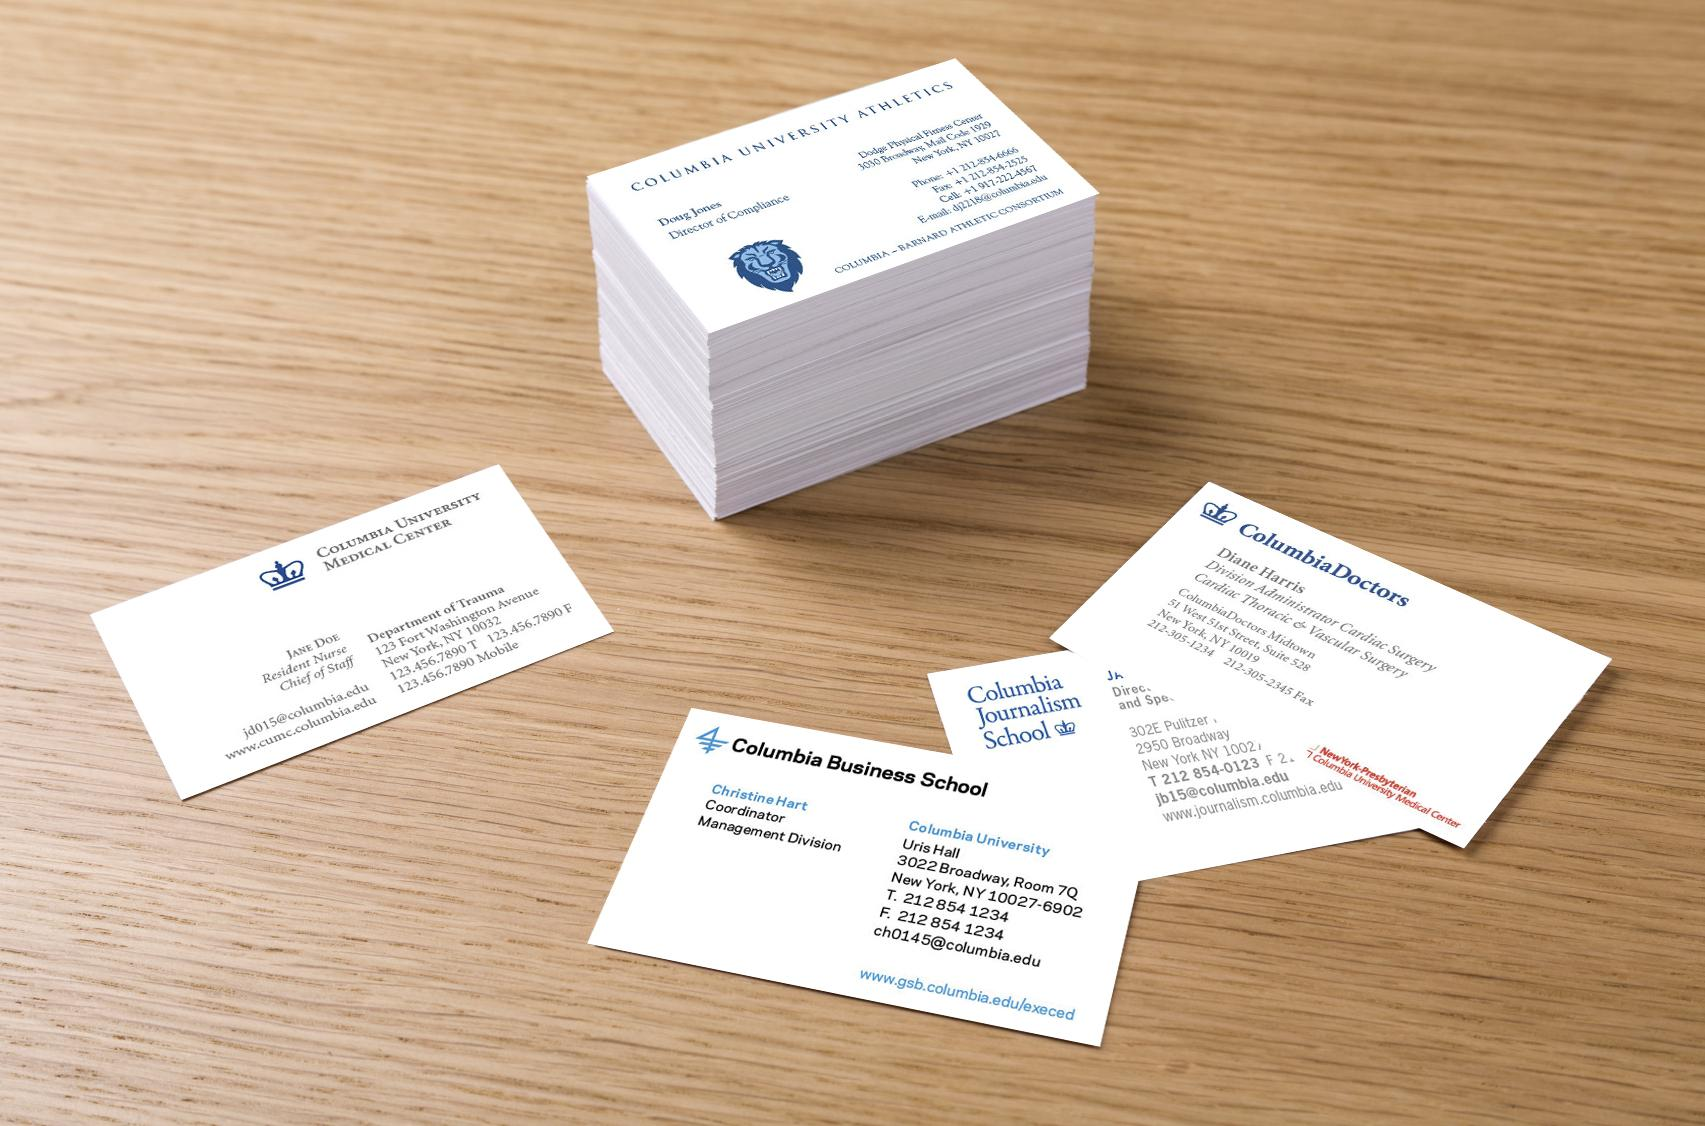 Business cards printing vaughan image collections card design and business card printers doncaster gallery card design and card template top 10 business cards printing vaughan reheart Images